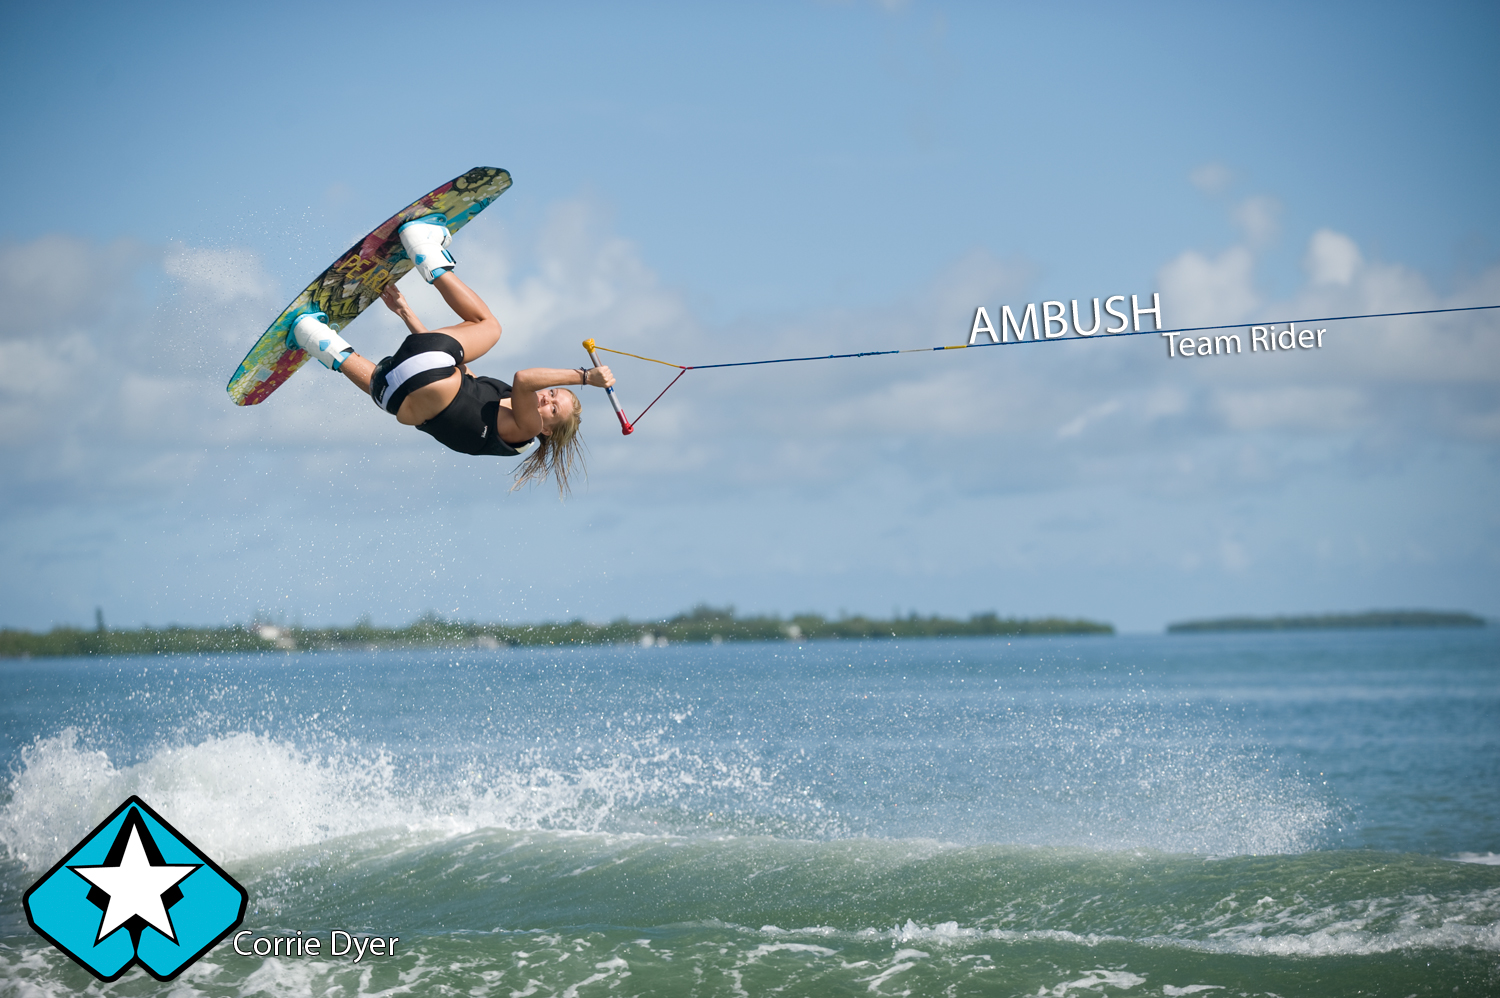 Corrie Dyer Ambush Team Rider